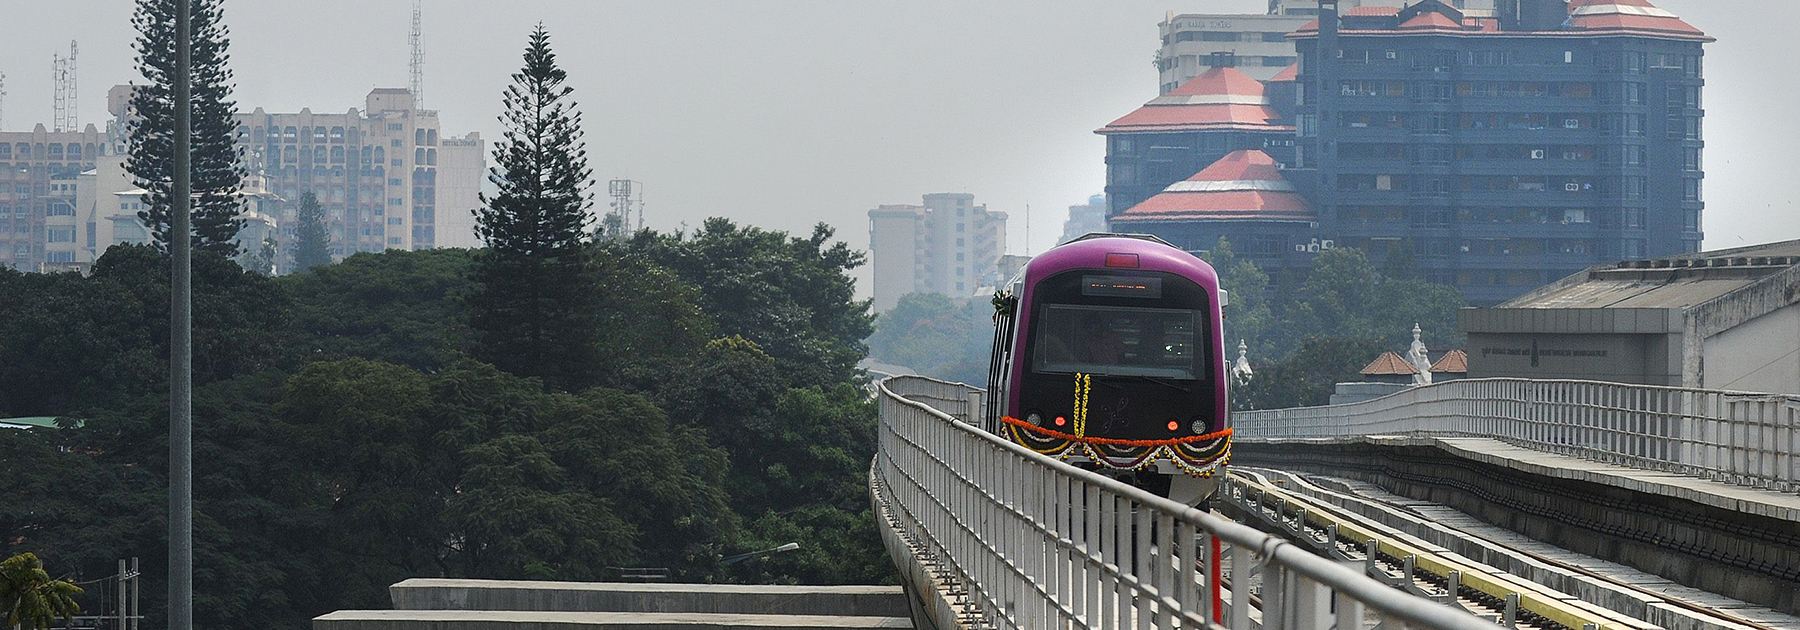 The Bangalore Metro Rail Corporation's Namma metro train. (DIBYANGSHU SARKAR/AFP/Getty Images)